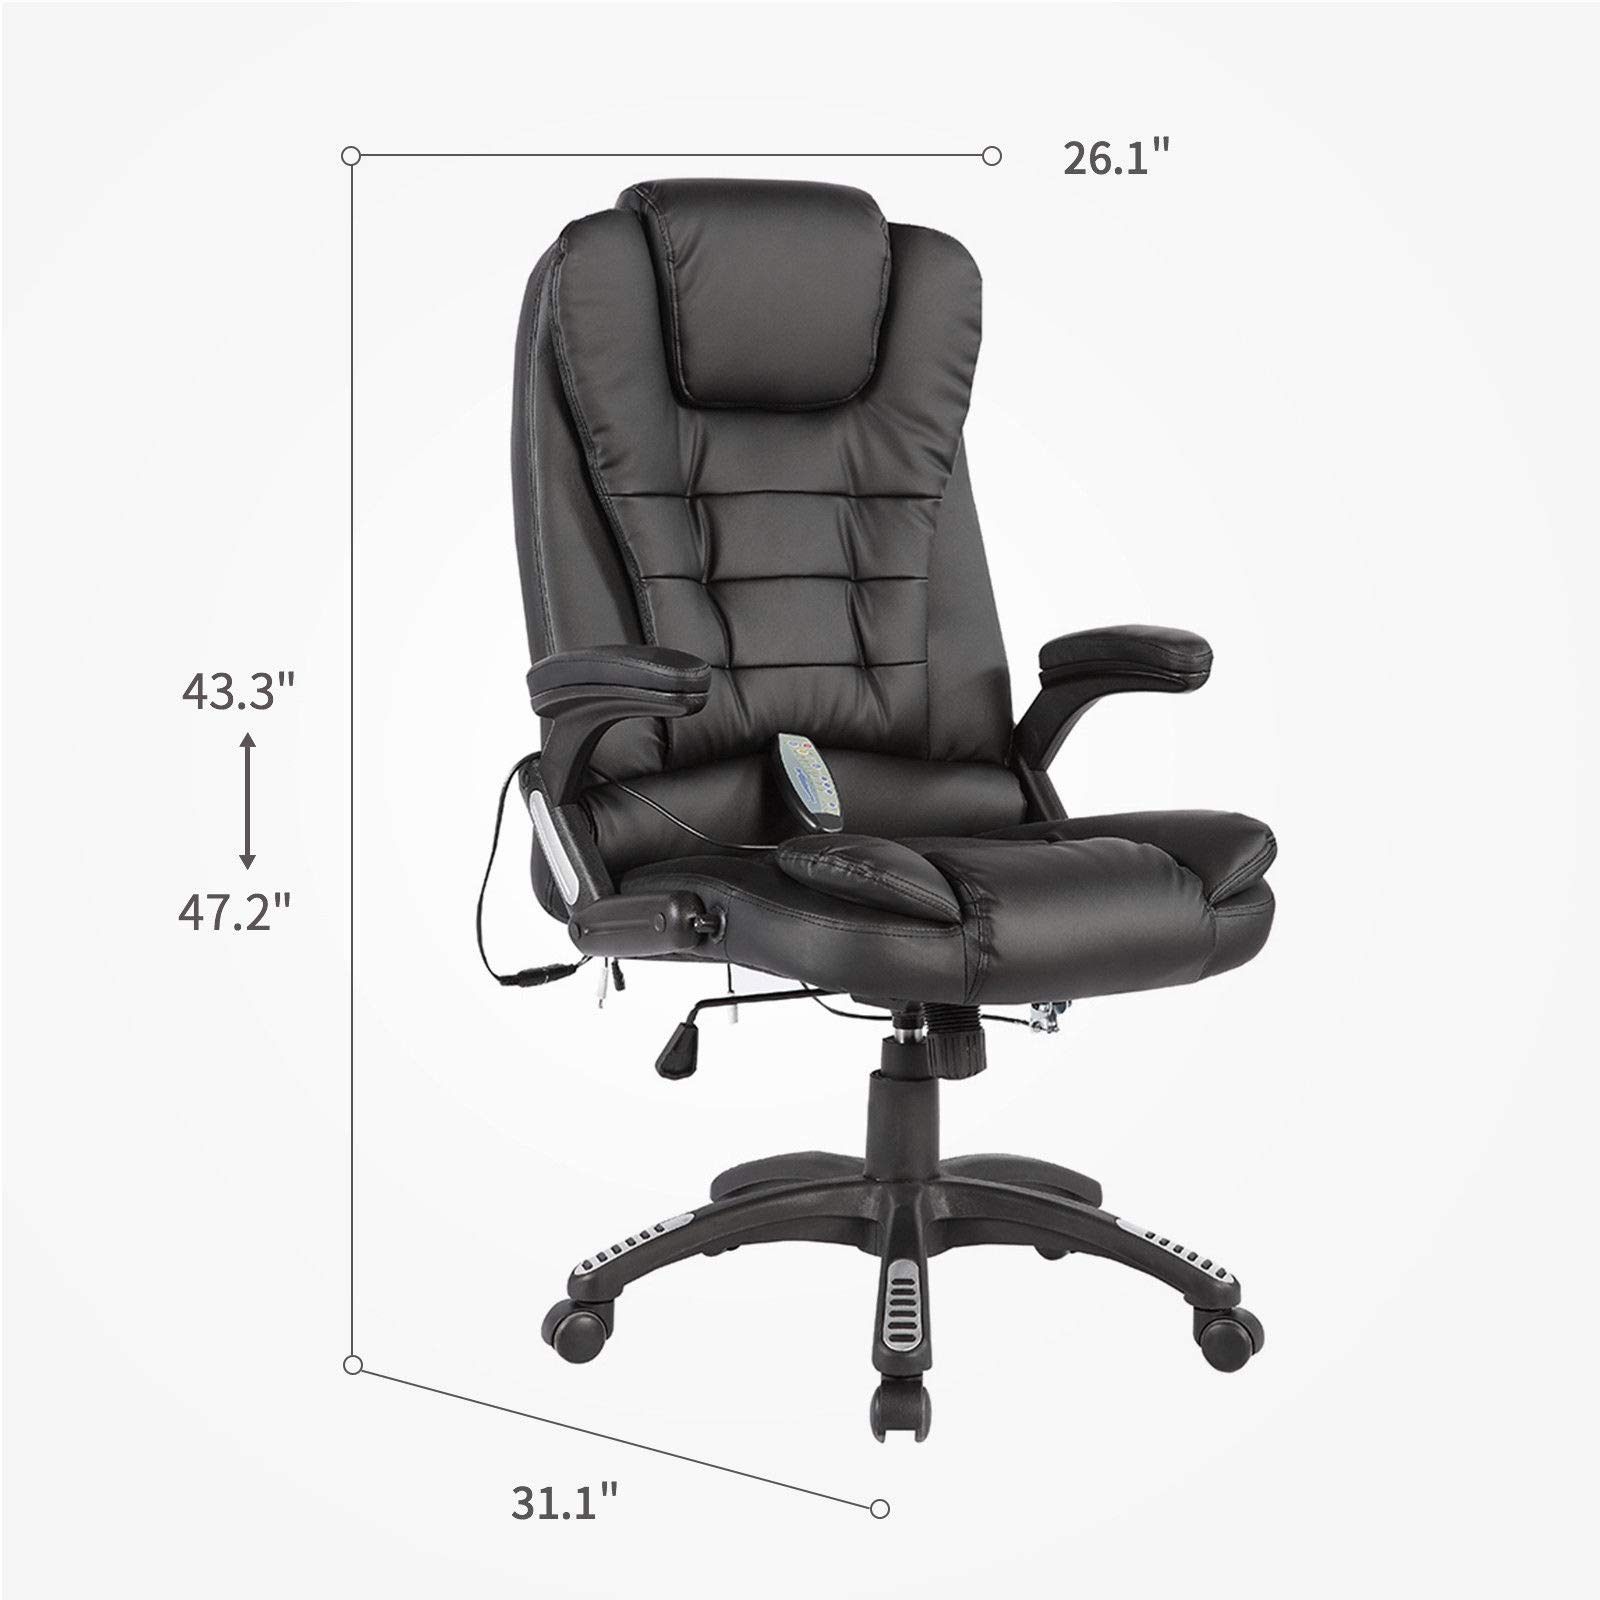 Black Massage Chair Office Swivel Executive Ergonomic Heated Vibrating Leather Chair, Remote Control 6-Point Massage, Adjustable Seat Height & Position by Taltintoo20 (Image #6)